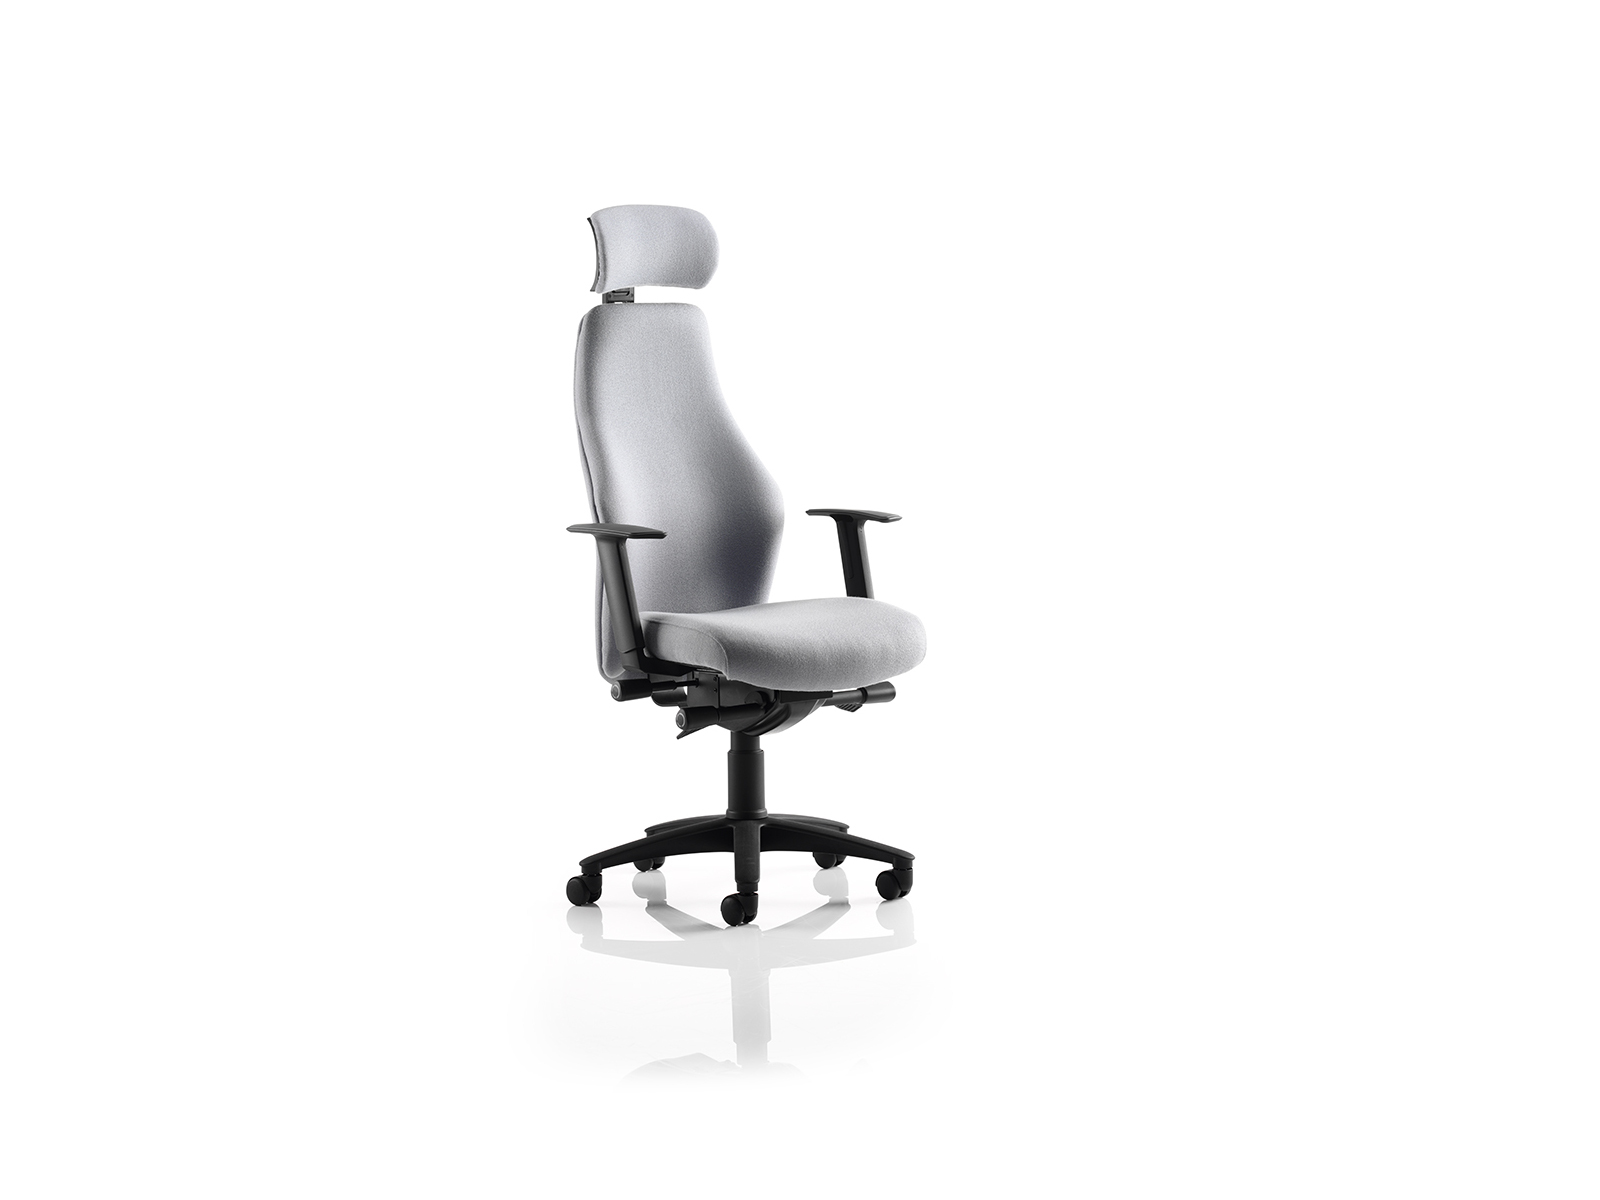 ergonomic chair guidelines pride power accessories office high density foam and very comfortable